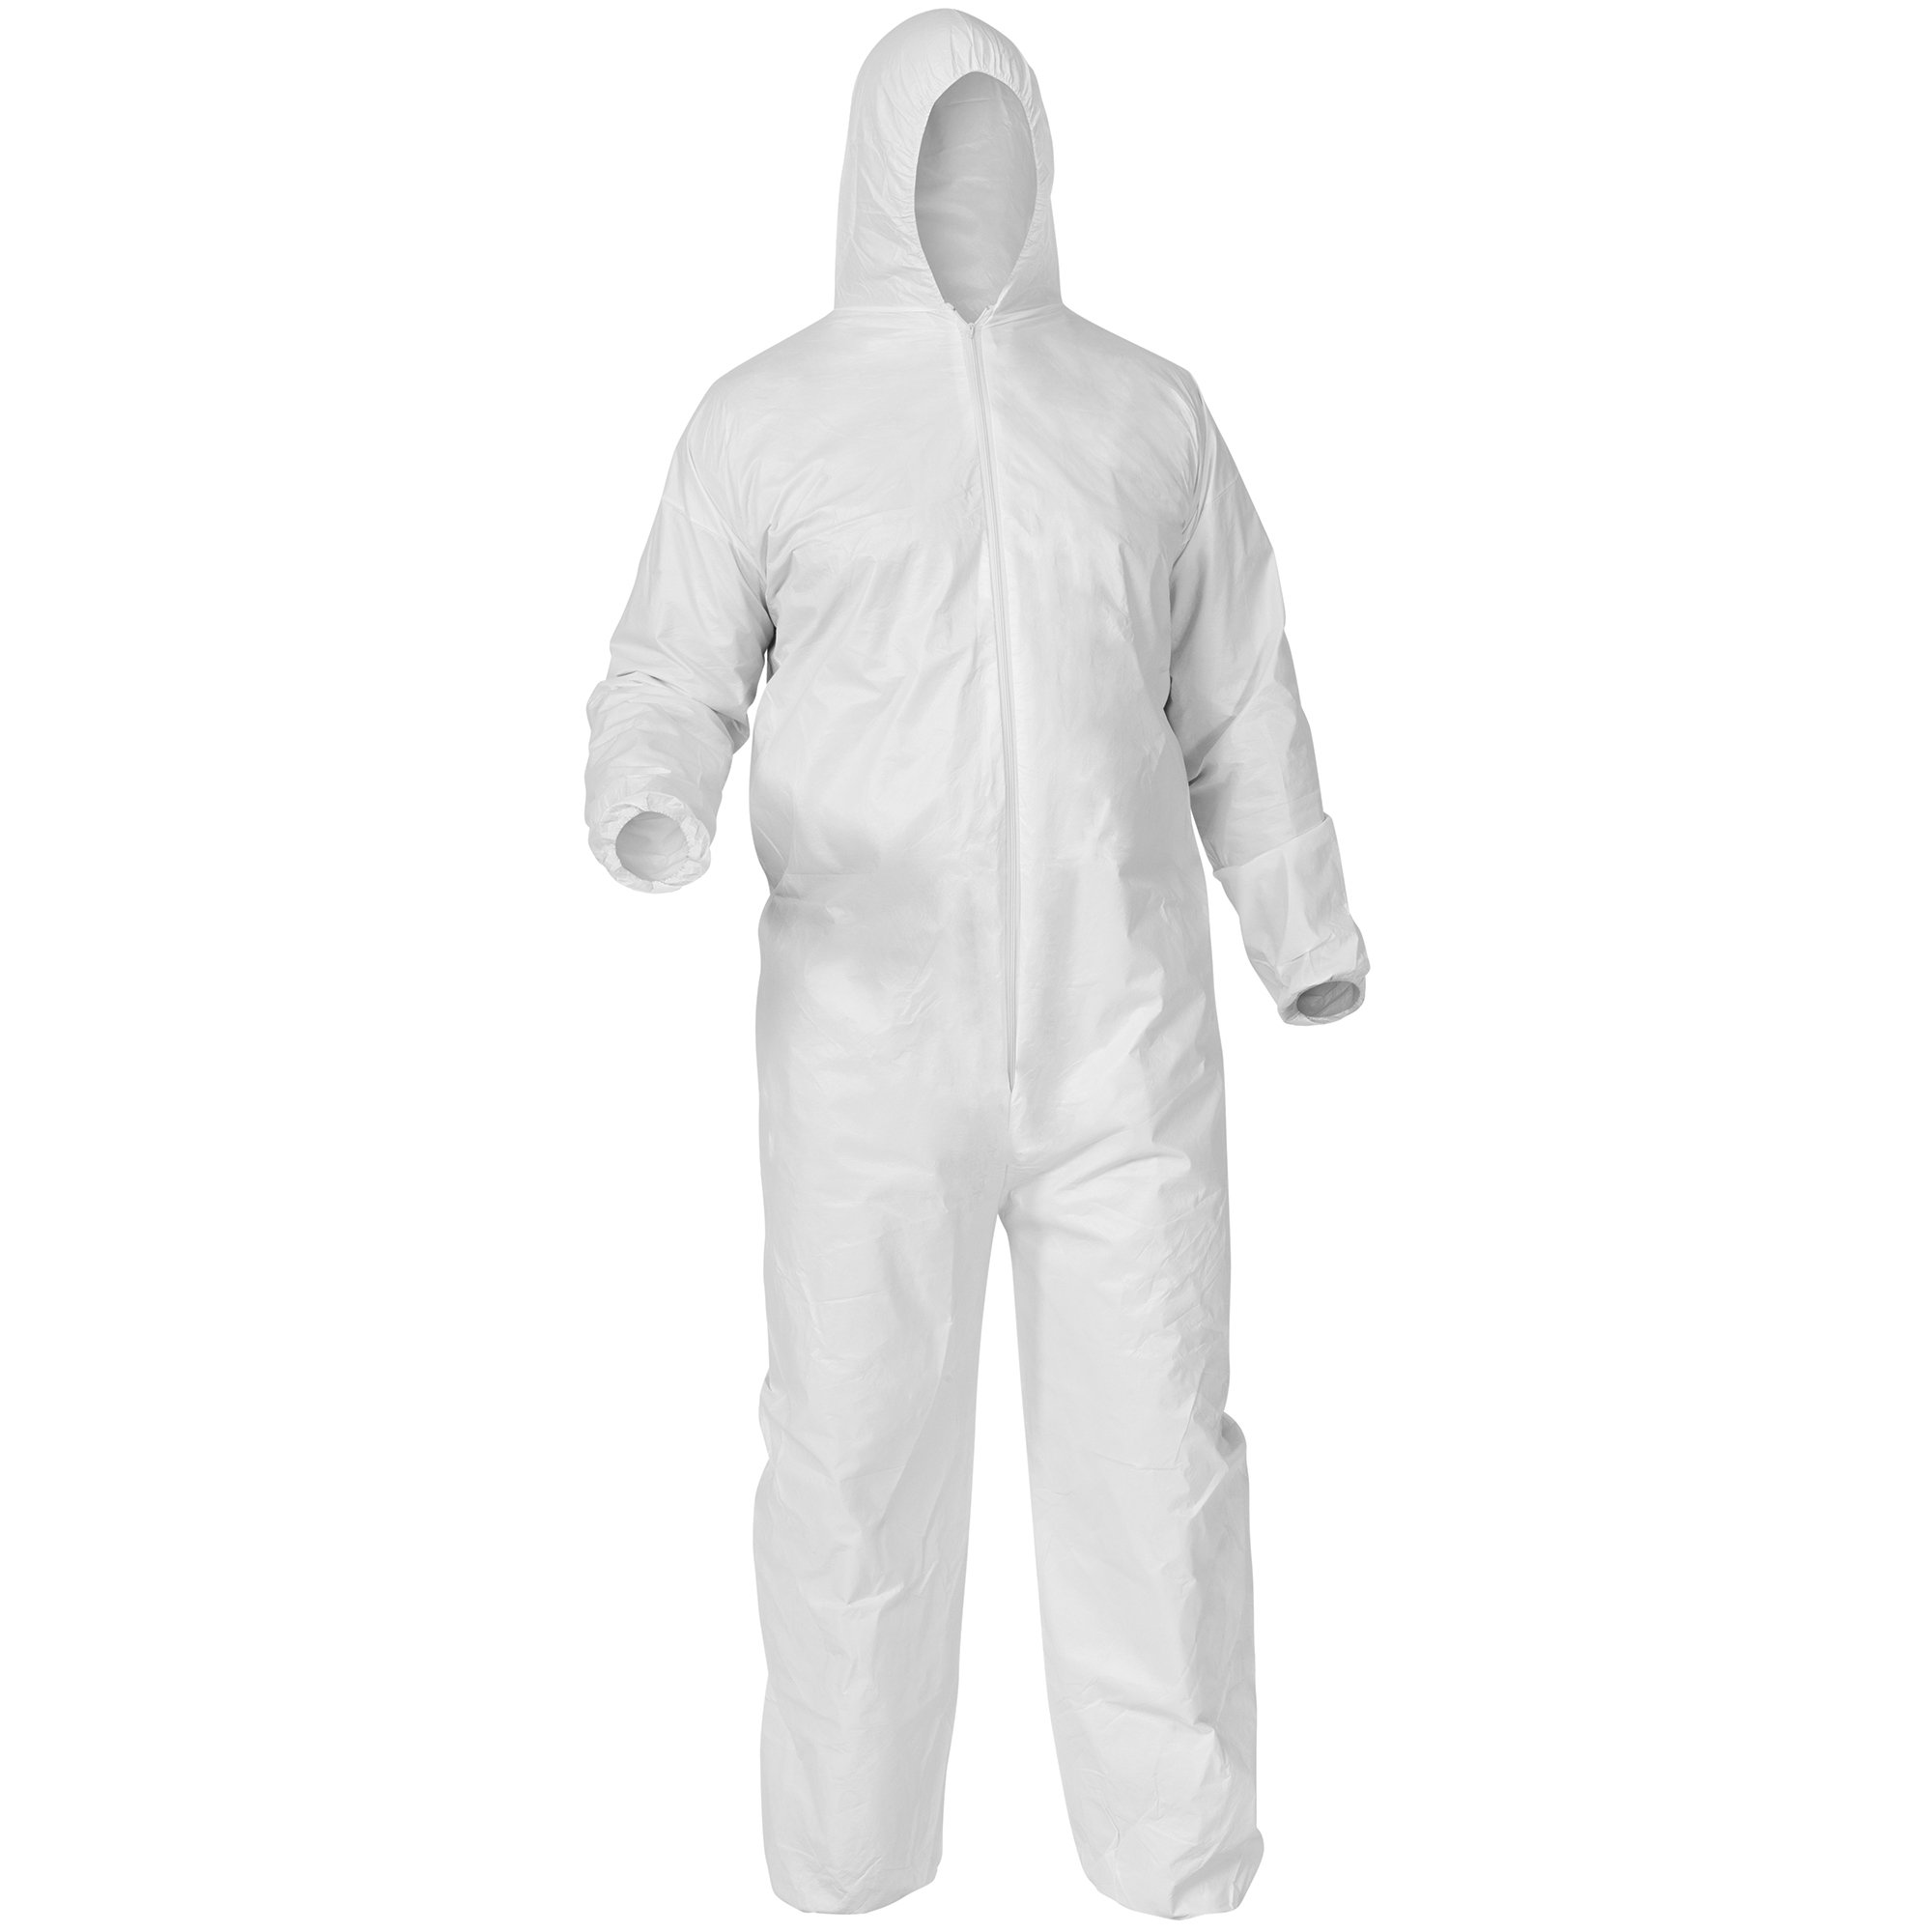 Kleenguard A35 Disposable Coveralls (38939), Liquid and Particle Protection, Hooded, White, Extra-Large (XL), 25 Garments/Case